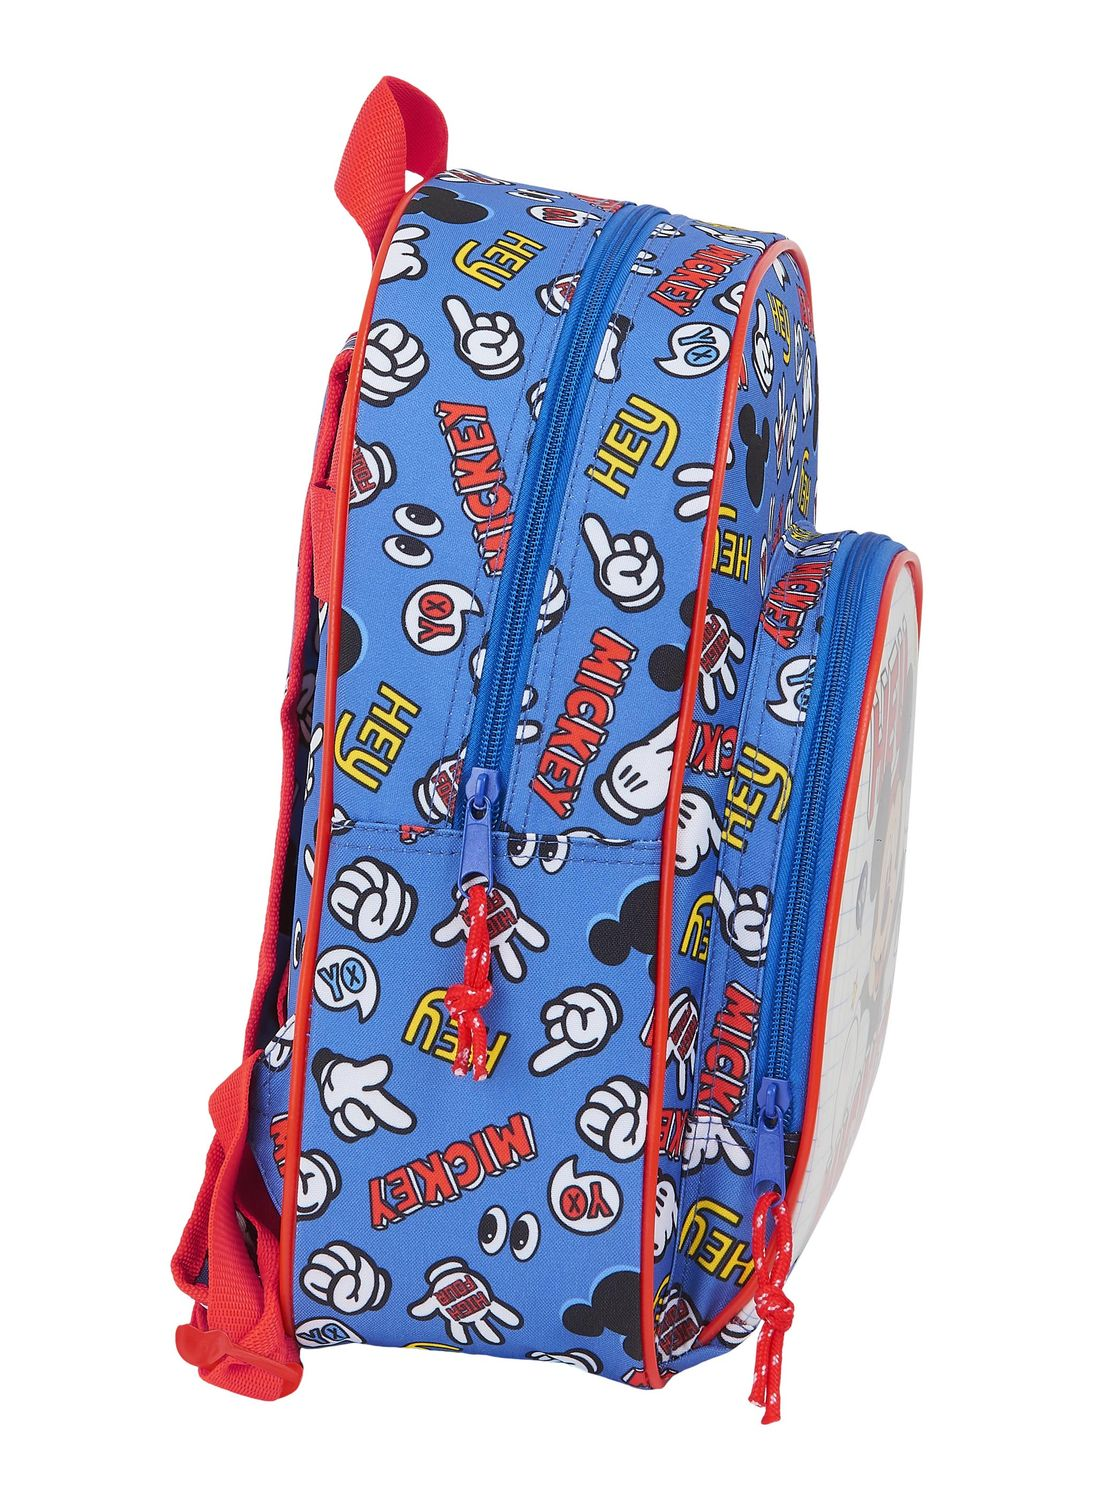 Disney MICKEY MOUSE THINGS Backpack Rucksack 34cm  – image 4